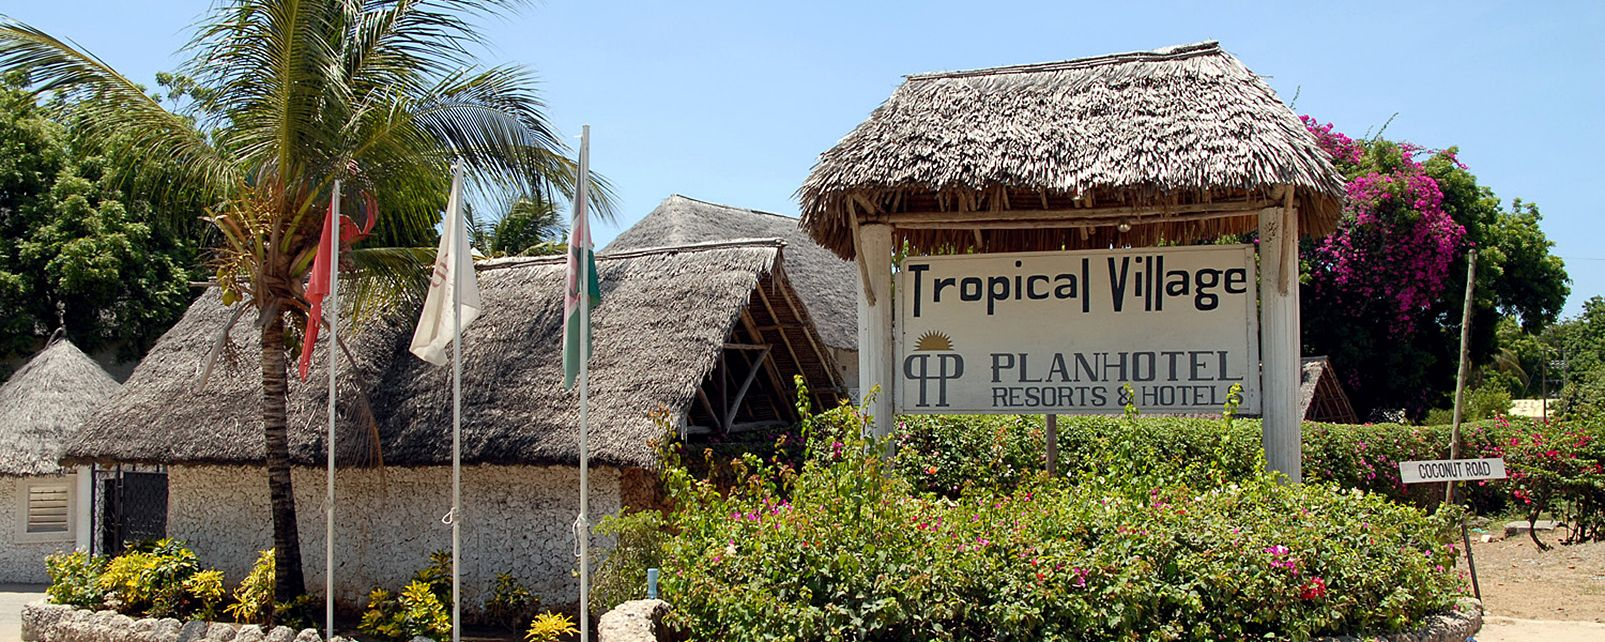 Hôtel Tropical Village